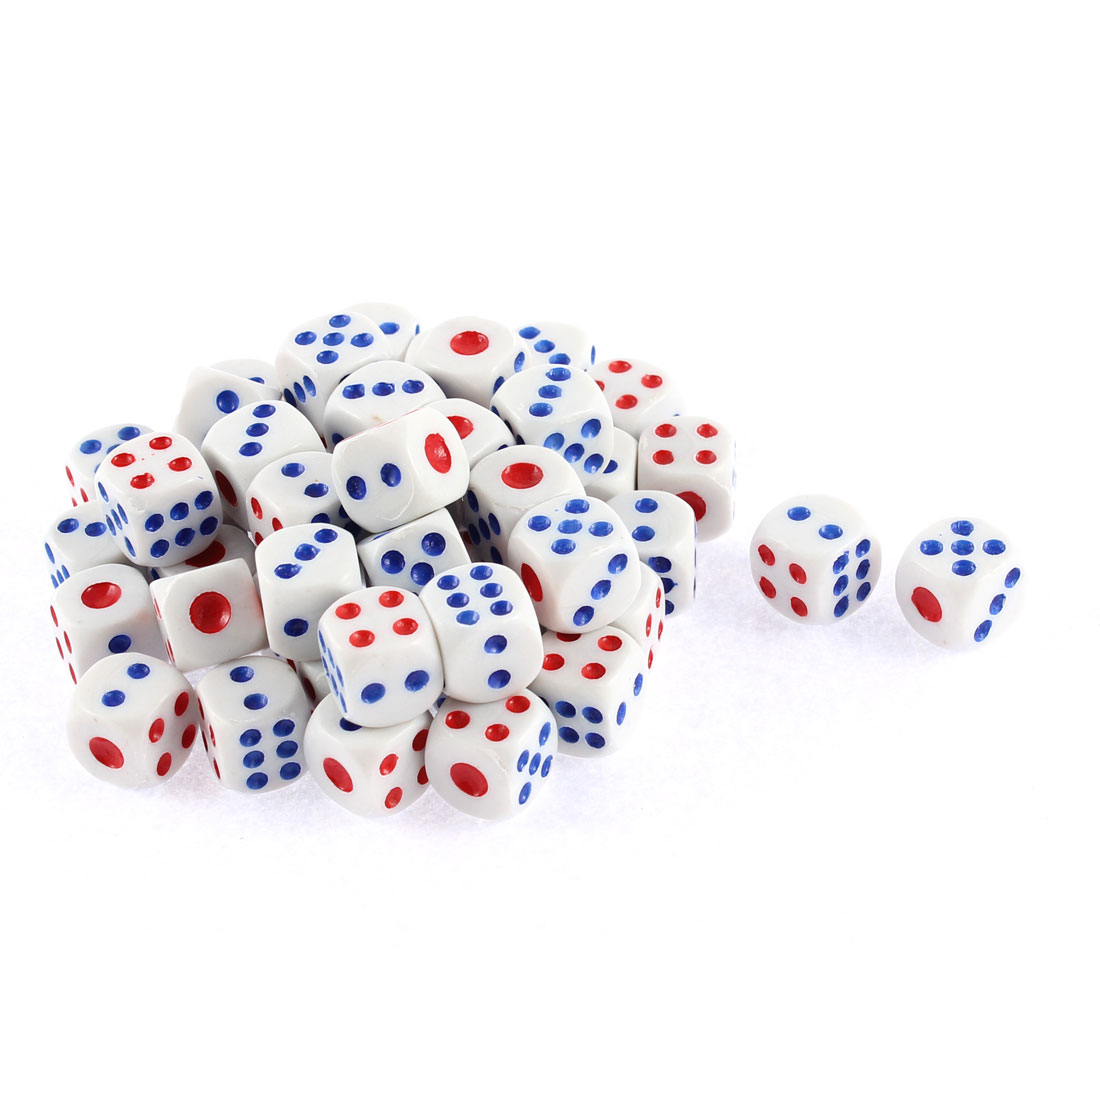 Unique Bargains 50 Pcs Square 1-6 Number Dots Casino Party Bar Holiday Game Gambling Dices